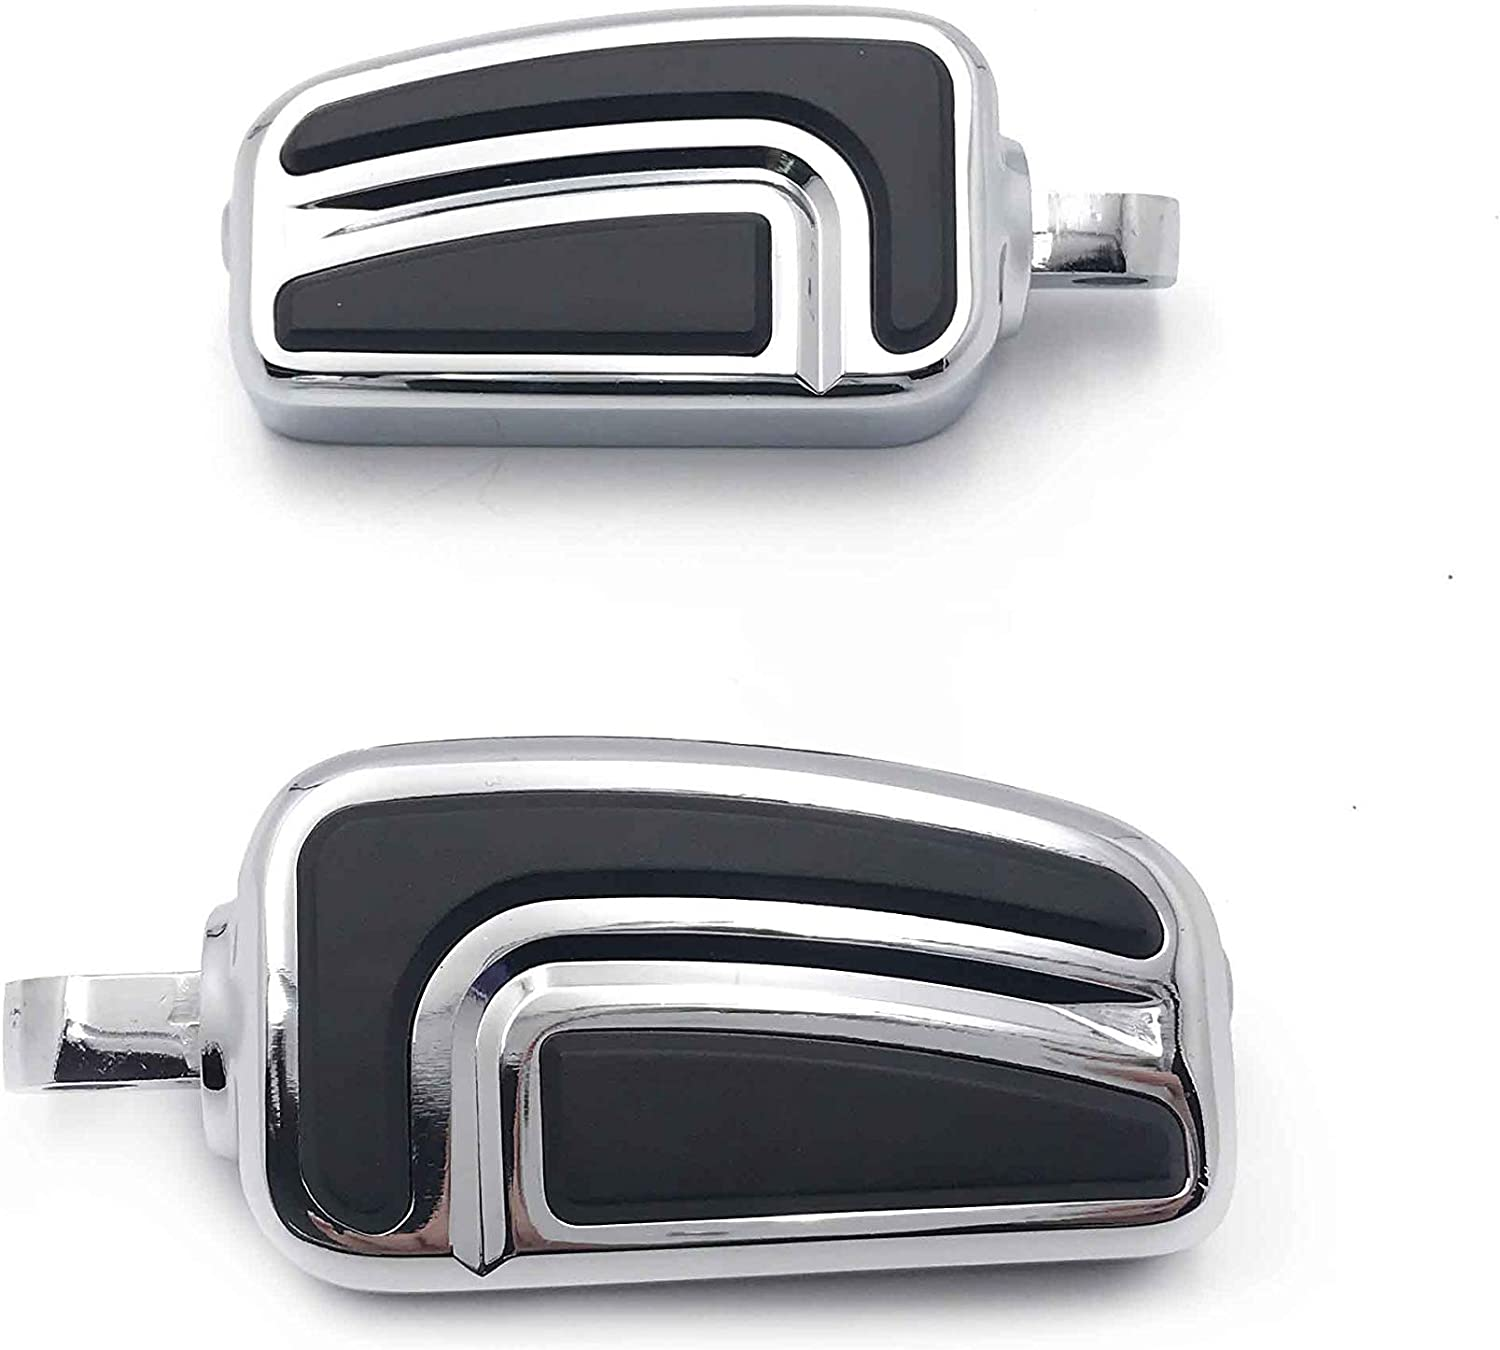 Seventy Two XL1200V// Forty Eight XL1200XSoftail Deluxe FLSTN//Breakout FXSB//CVO Pro Street Breakout FXSE HTTMT Style 101-2 PCs Chrome Billet Shifter Peg Compatible with Harley Davidson all models